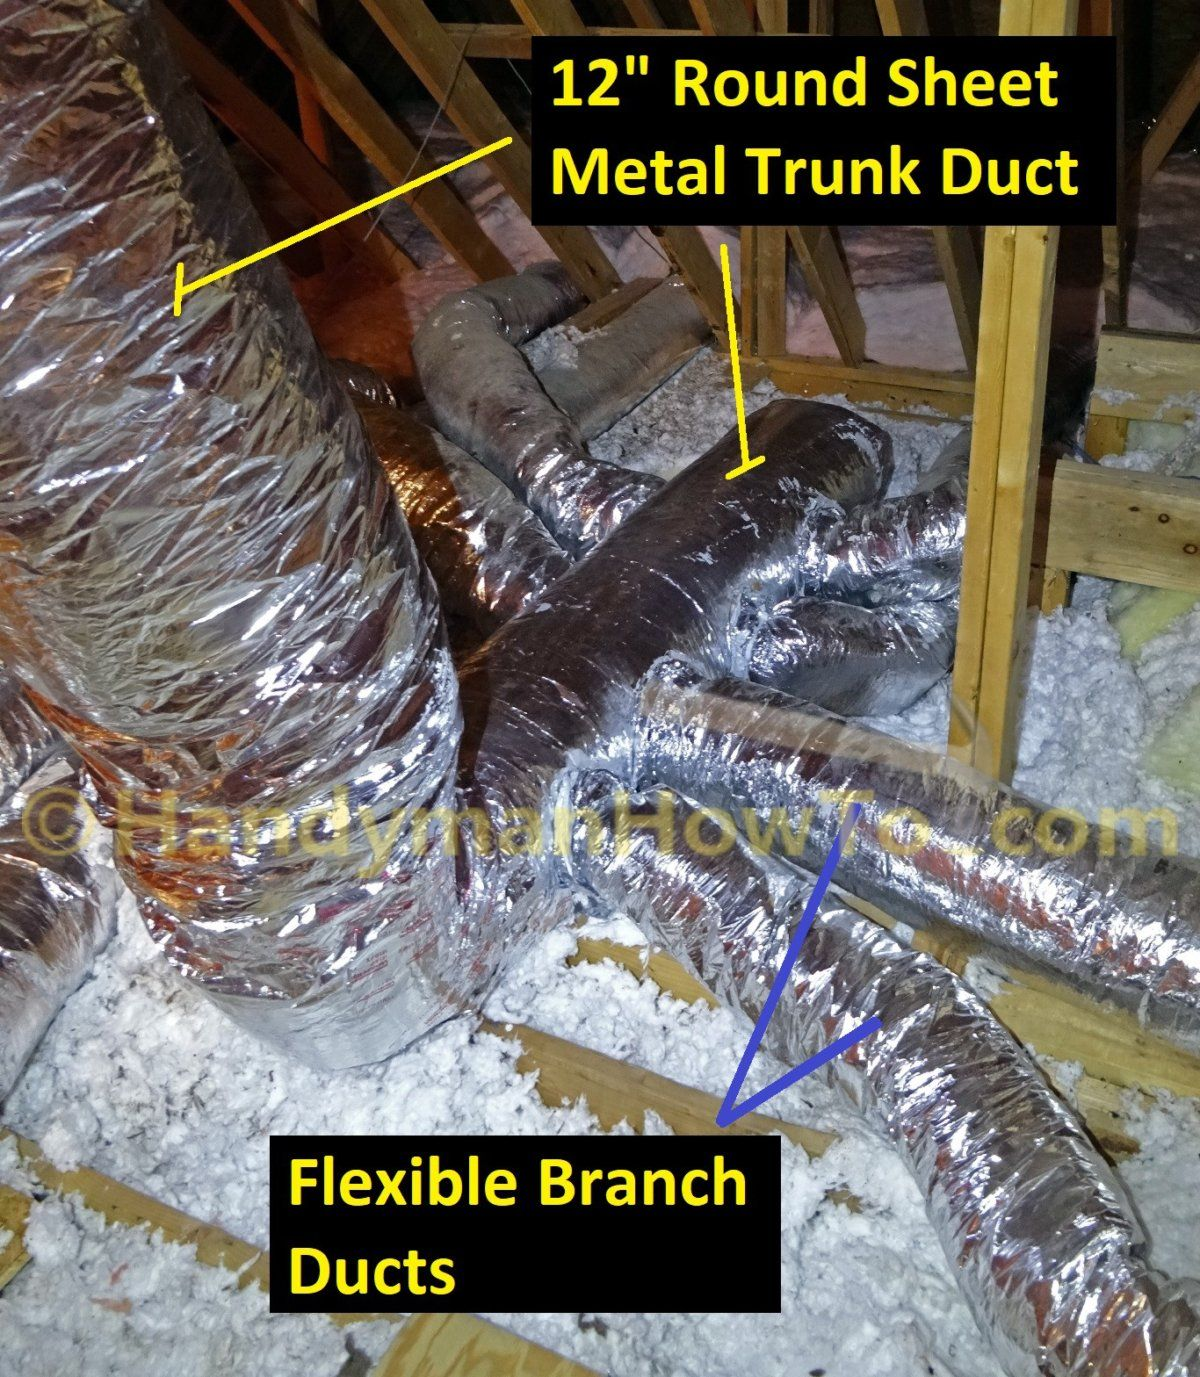 How To Install Round Sheet Metal Duct Sheet Metal Metal Trunks